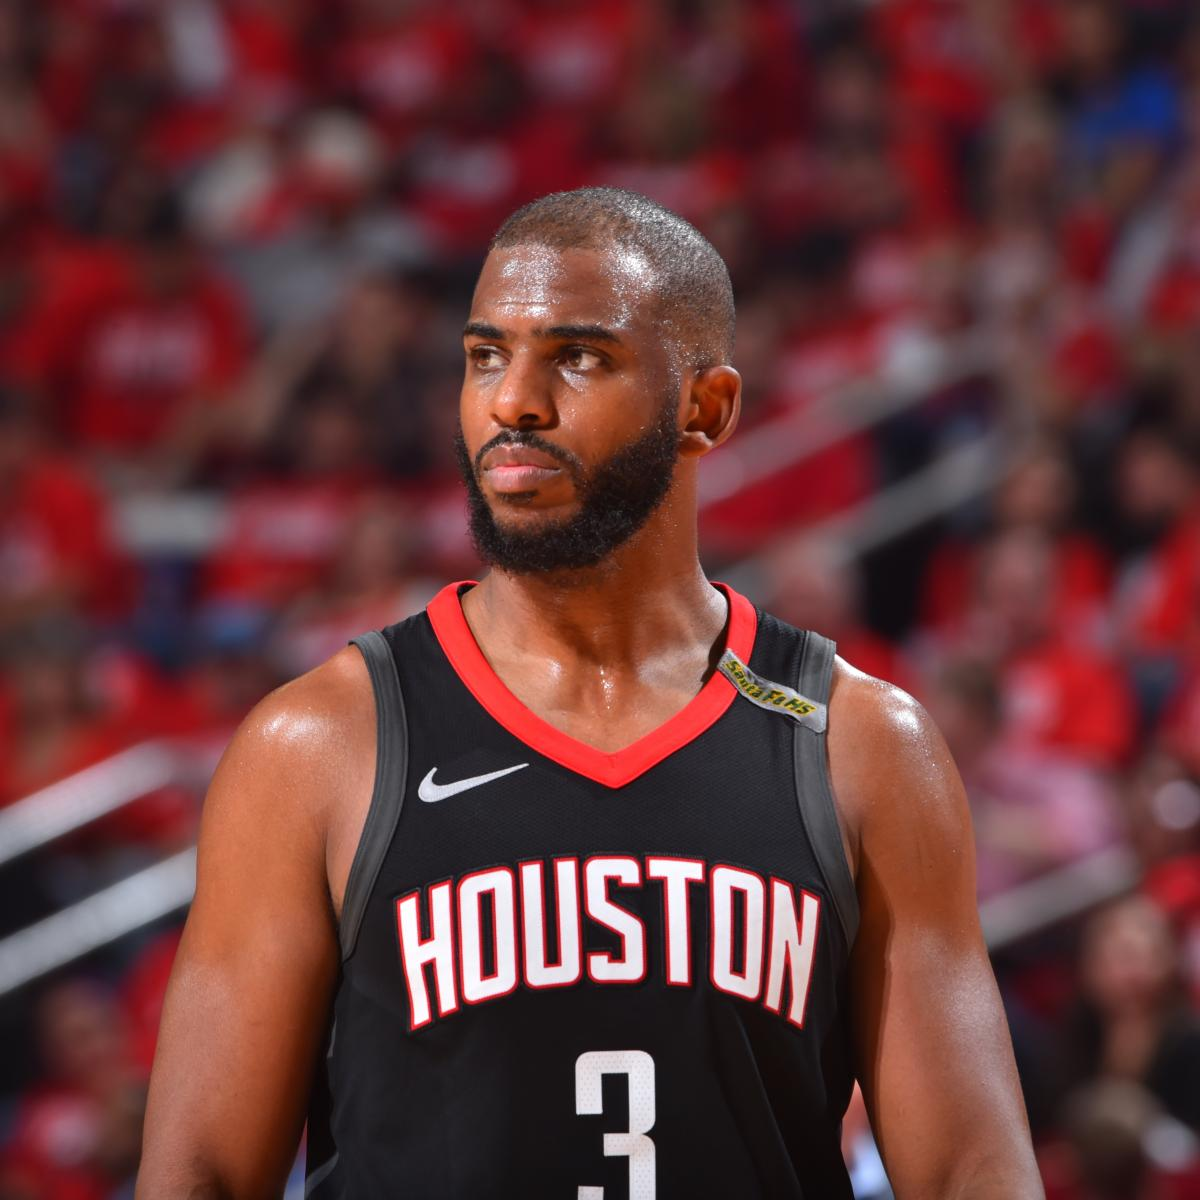 Rockets Vs Warriors Game 7 Where: Chris Paul Won't Play In Game 7 Vs. Warriors After